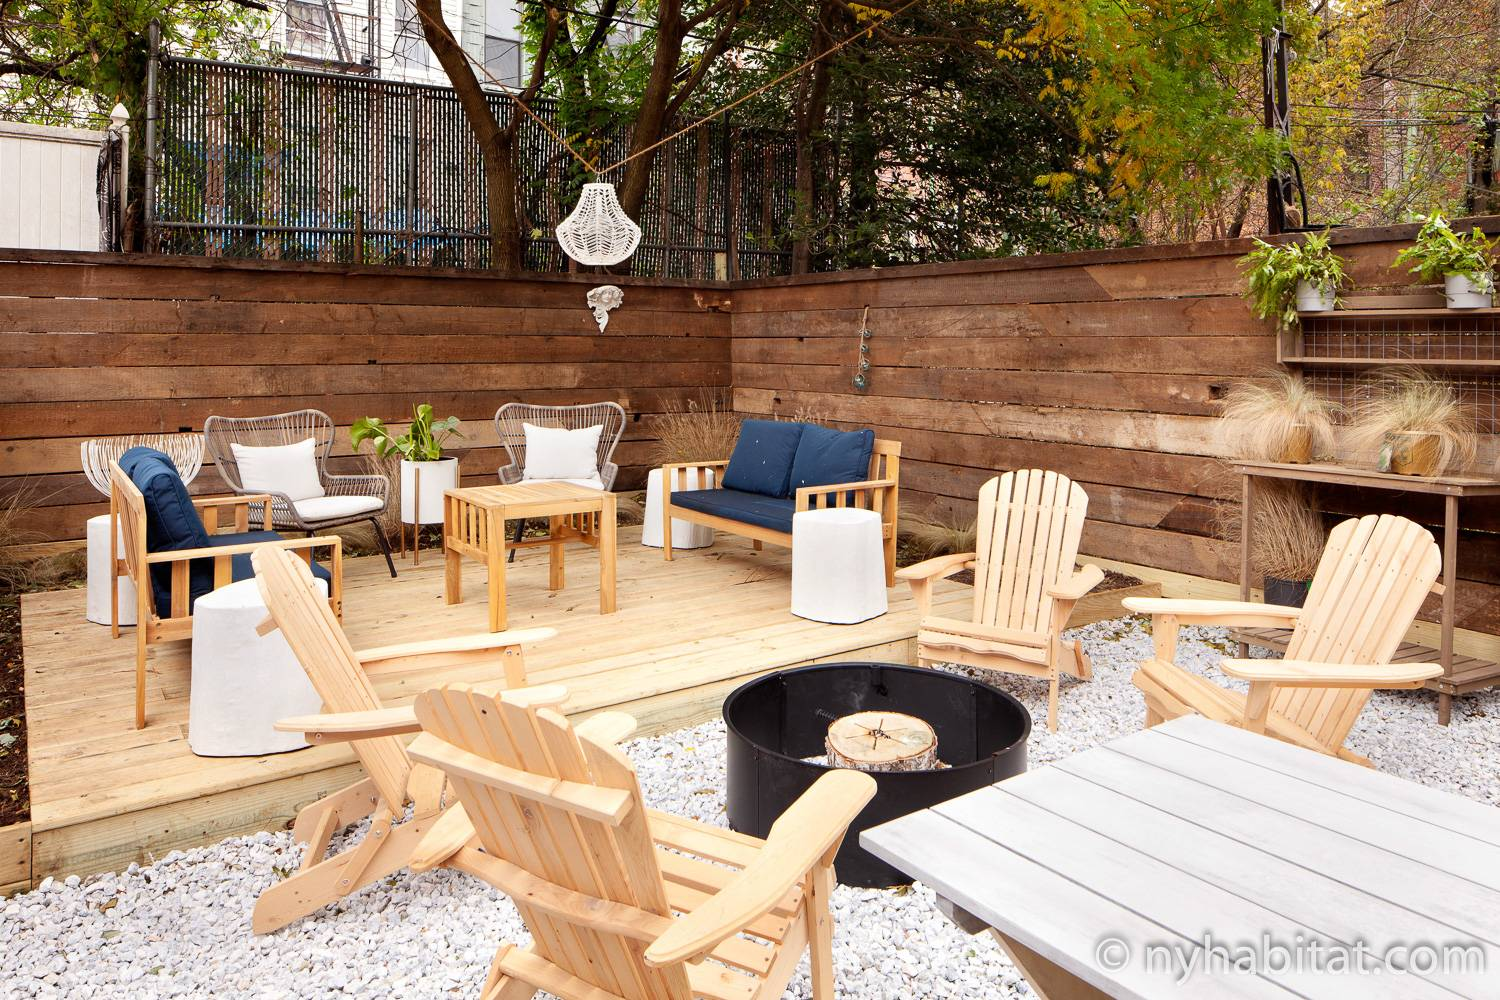 Image of backyard area in NY-17881 with fire pit and various seating options.